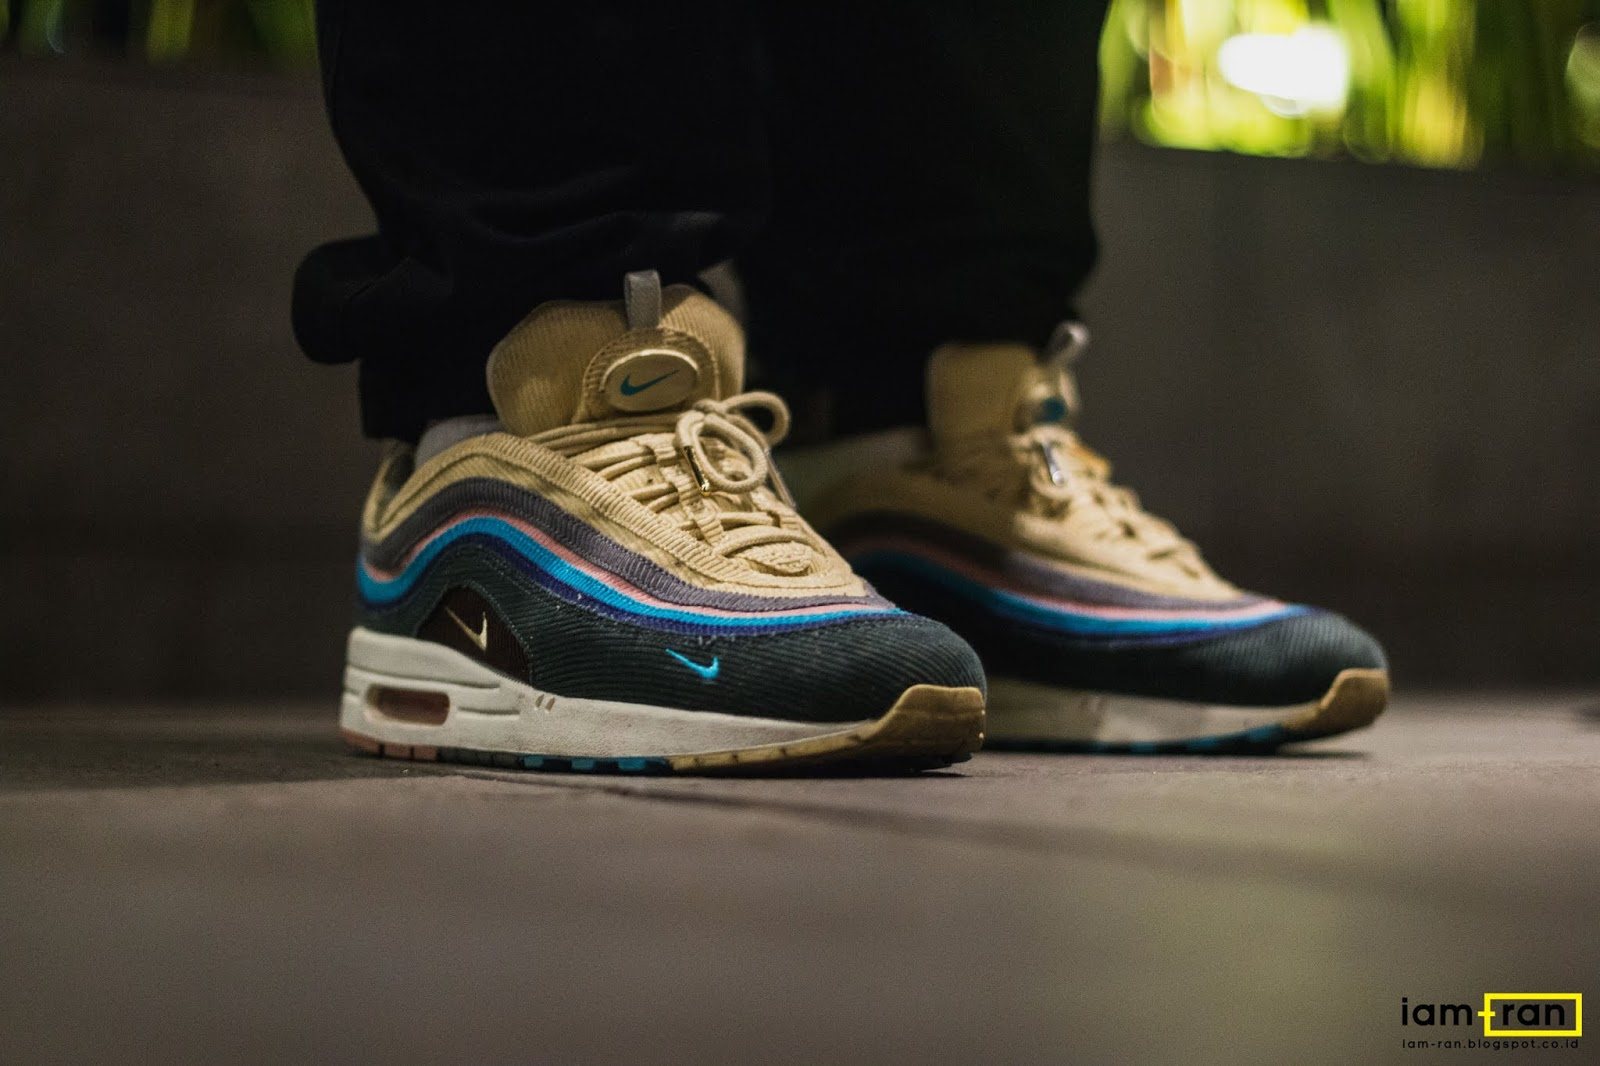 online retailer 646a9 18b73 IAM-RAN: ON FEET : Tom Cuk - Nike airmax 97/1 Sean Wotherspoon